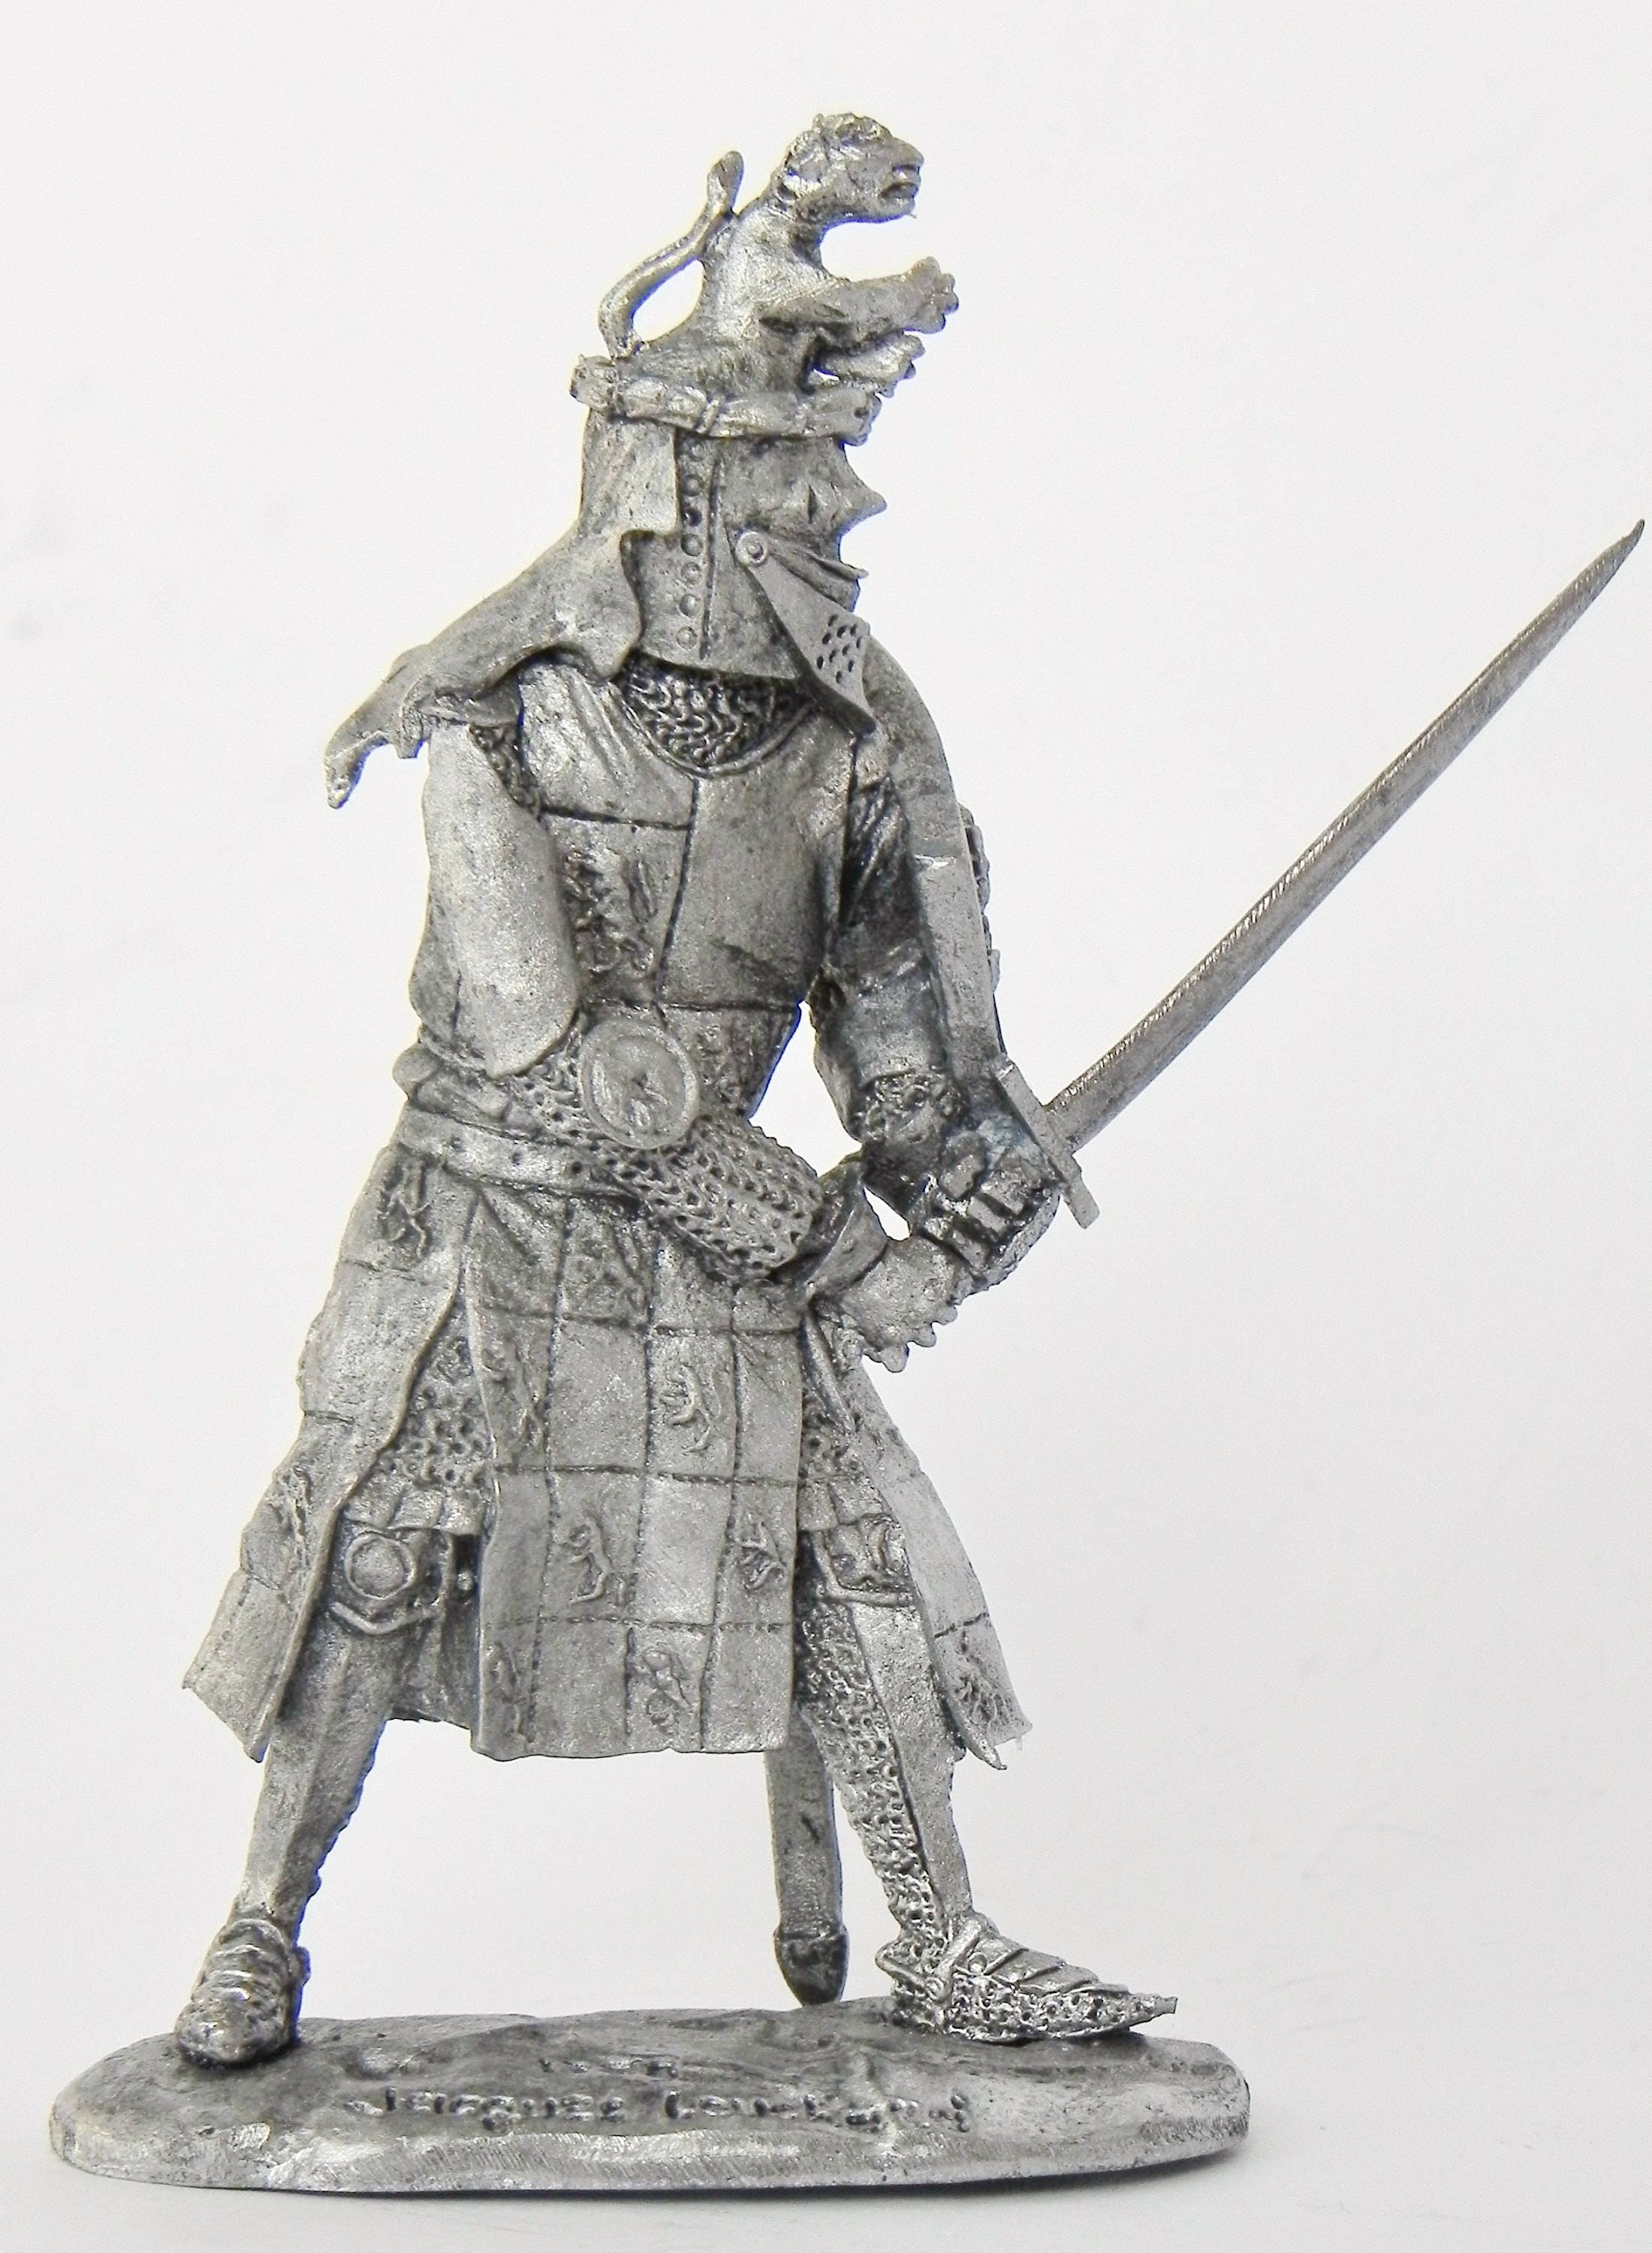 Tin soldier. Tin miniature. Pewter sculpture. Middle Ages.